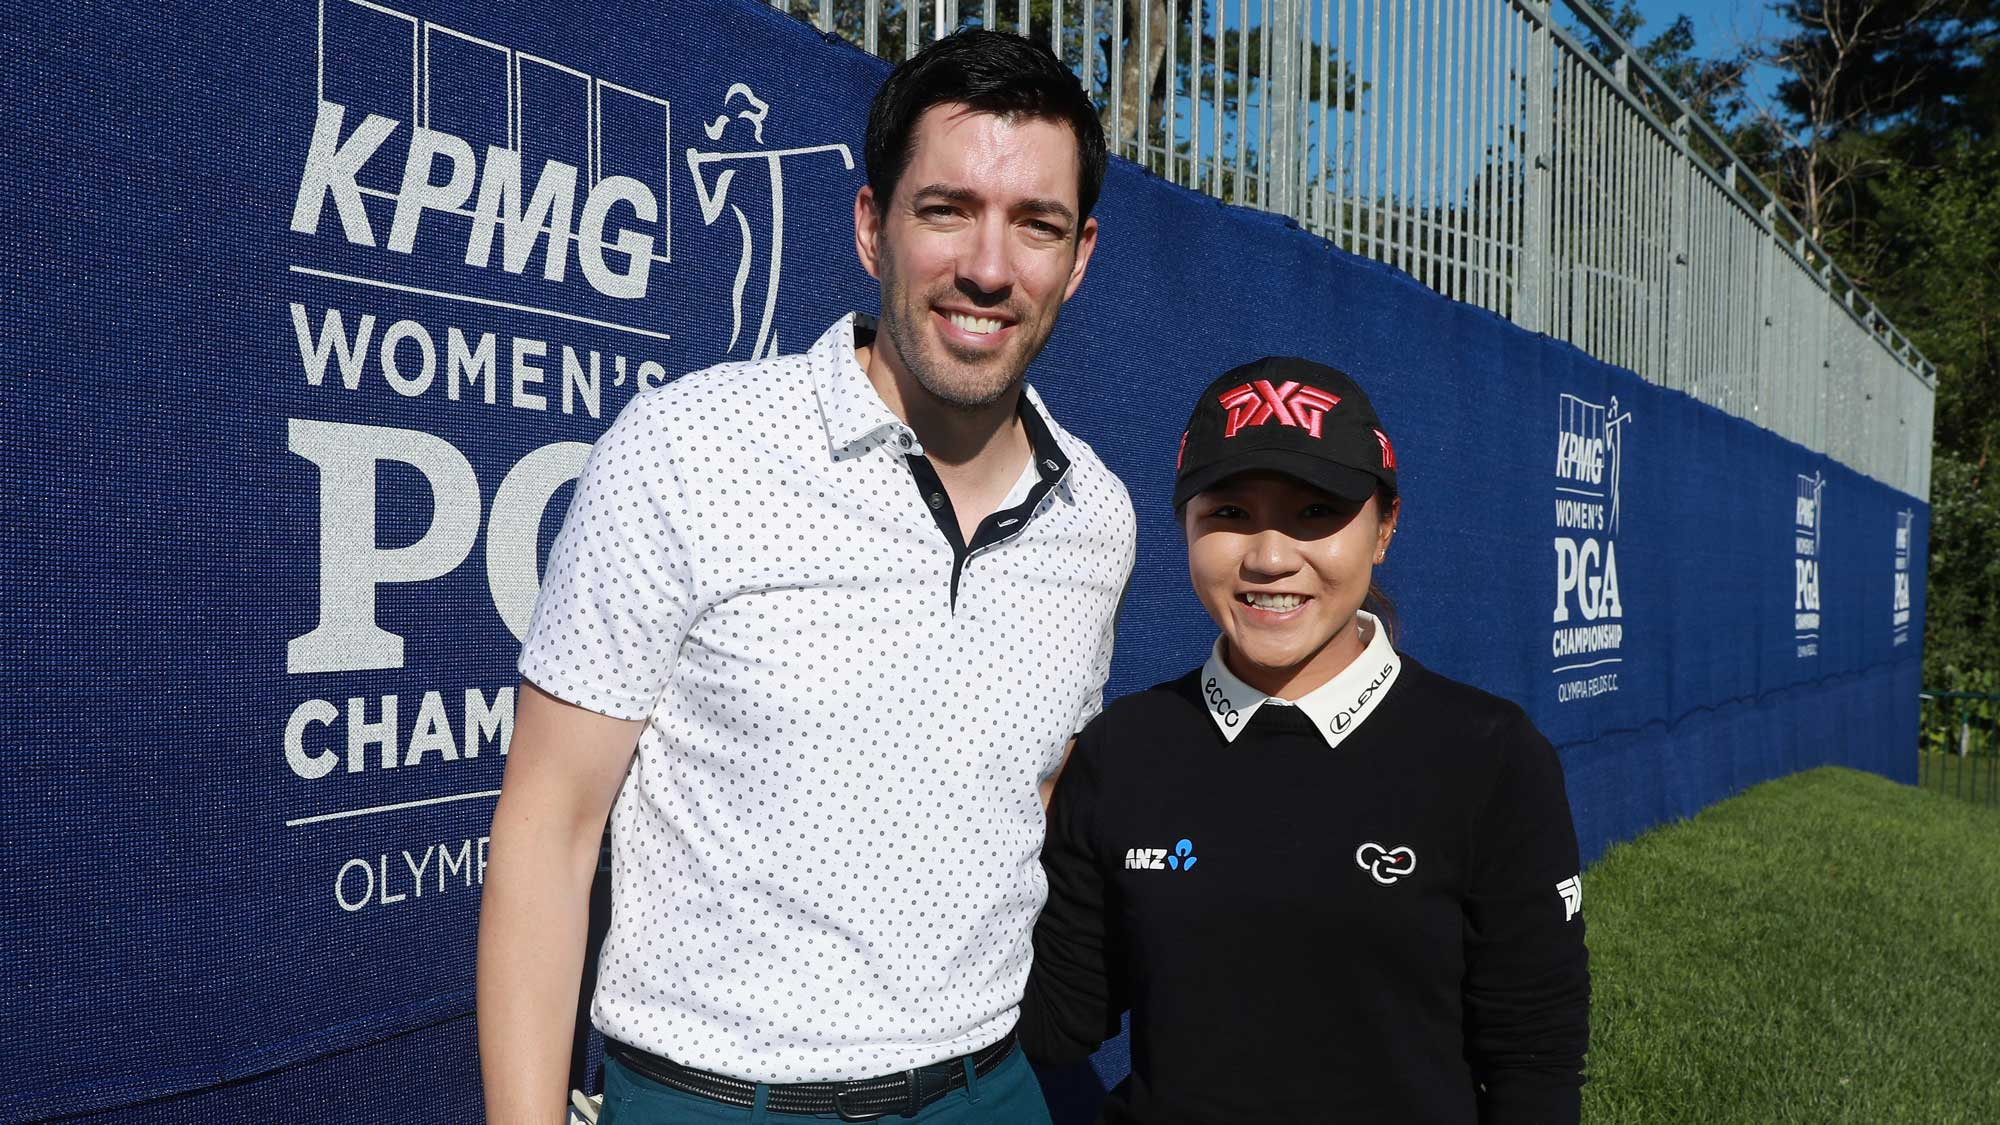 Drew Scott of HGTV (L) poses with Lydia Ko of South Korea during the pro-am prior to the start of the 2017 KPMG Women's PGA Championship